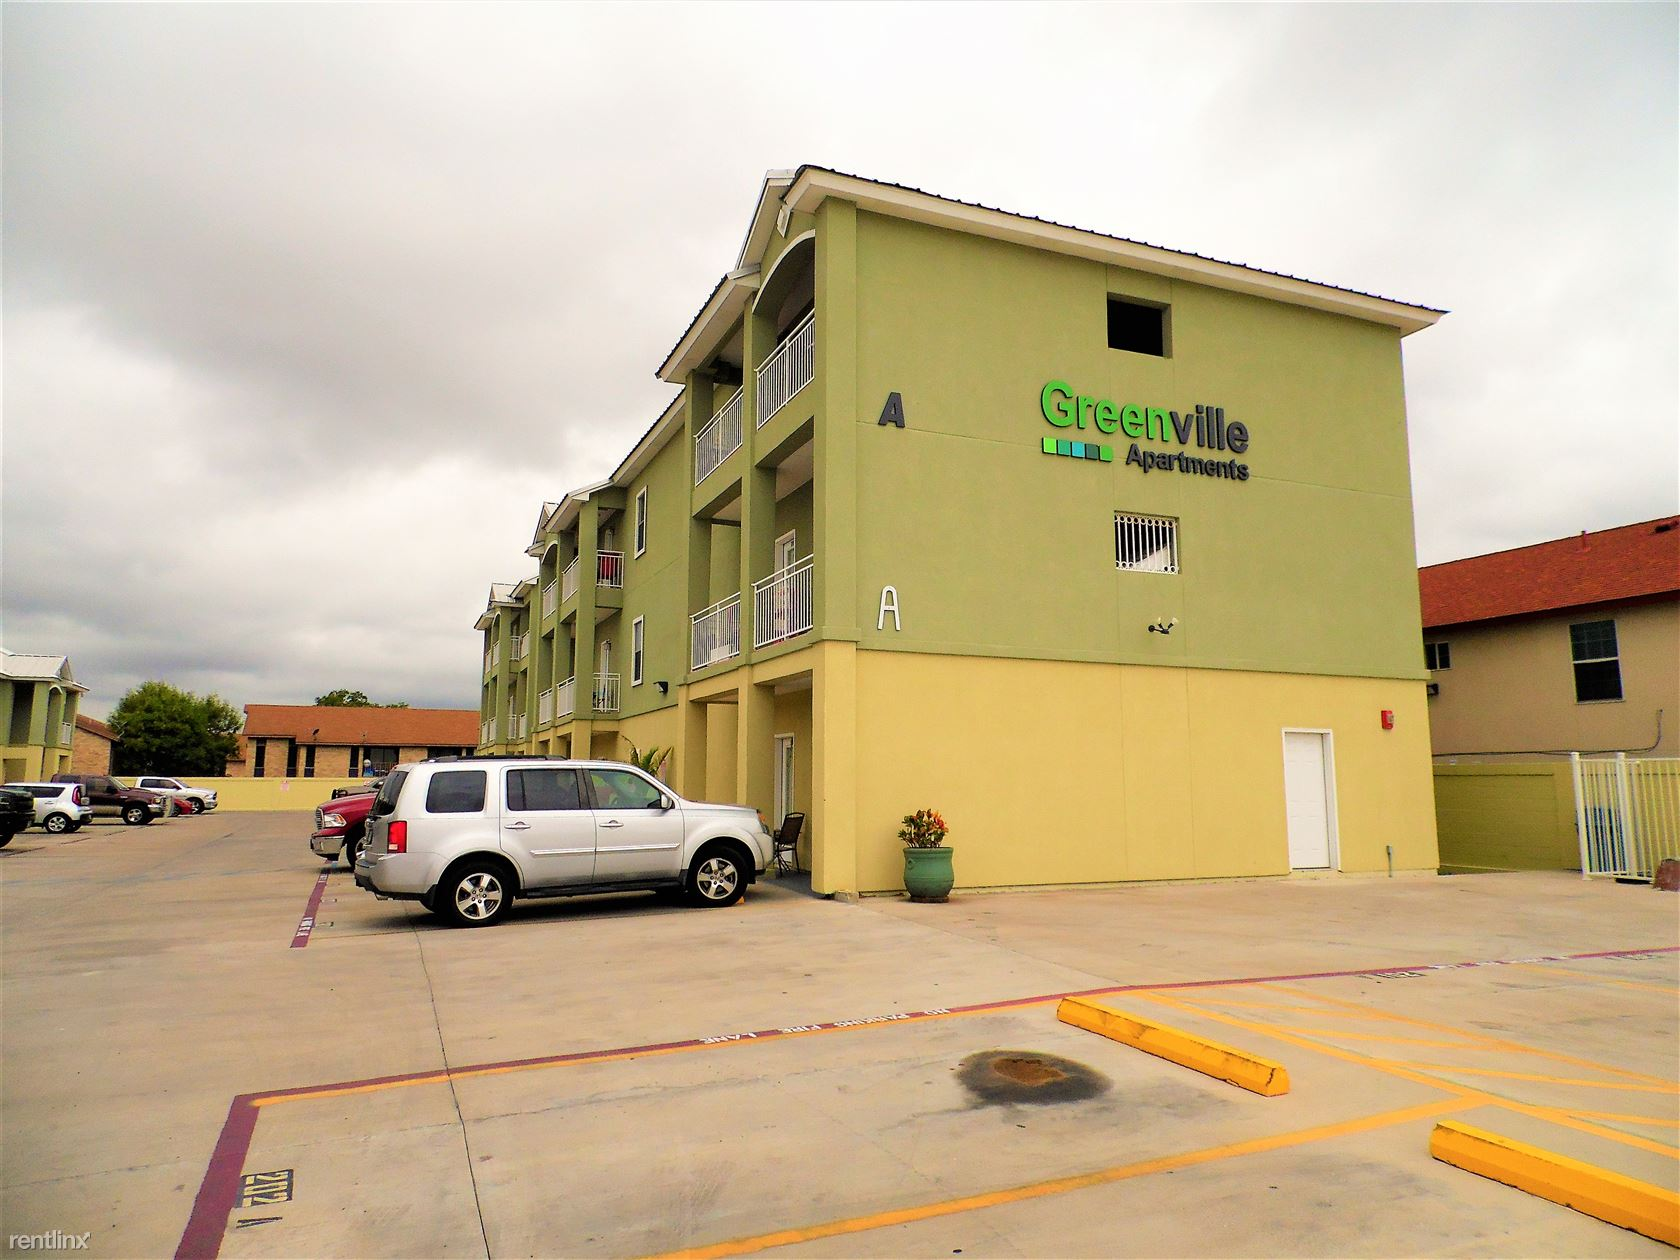 Greenville Apartments